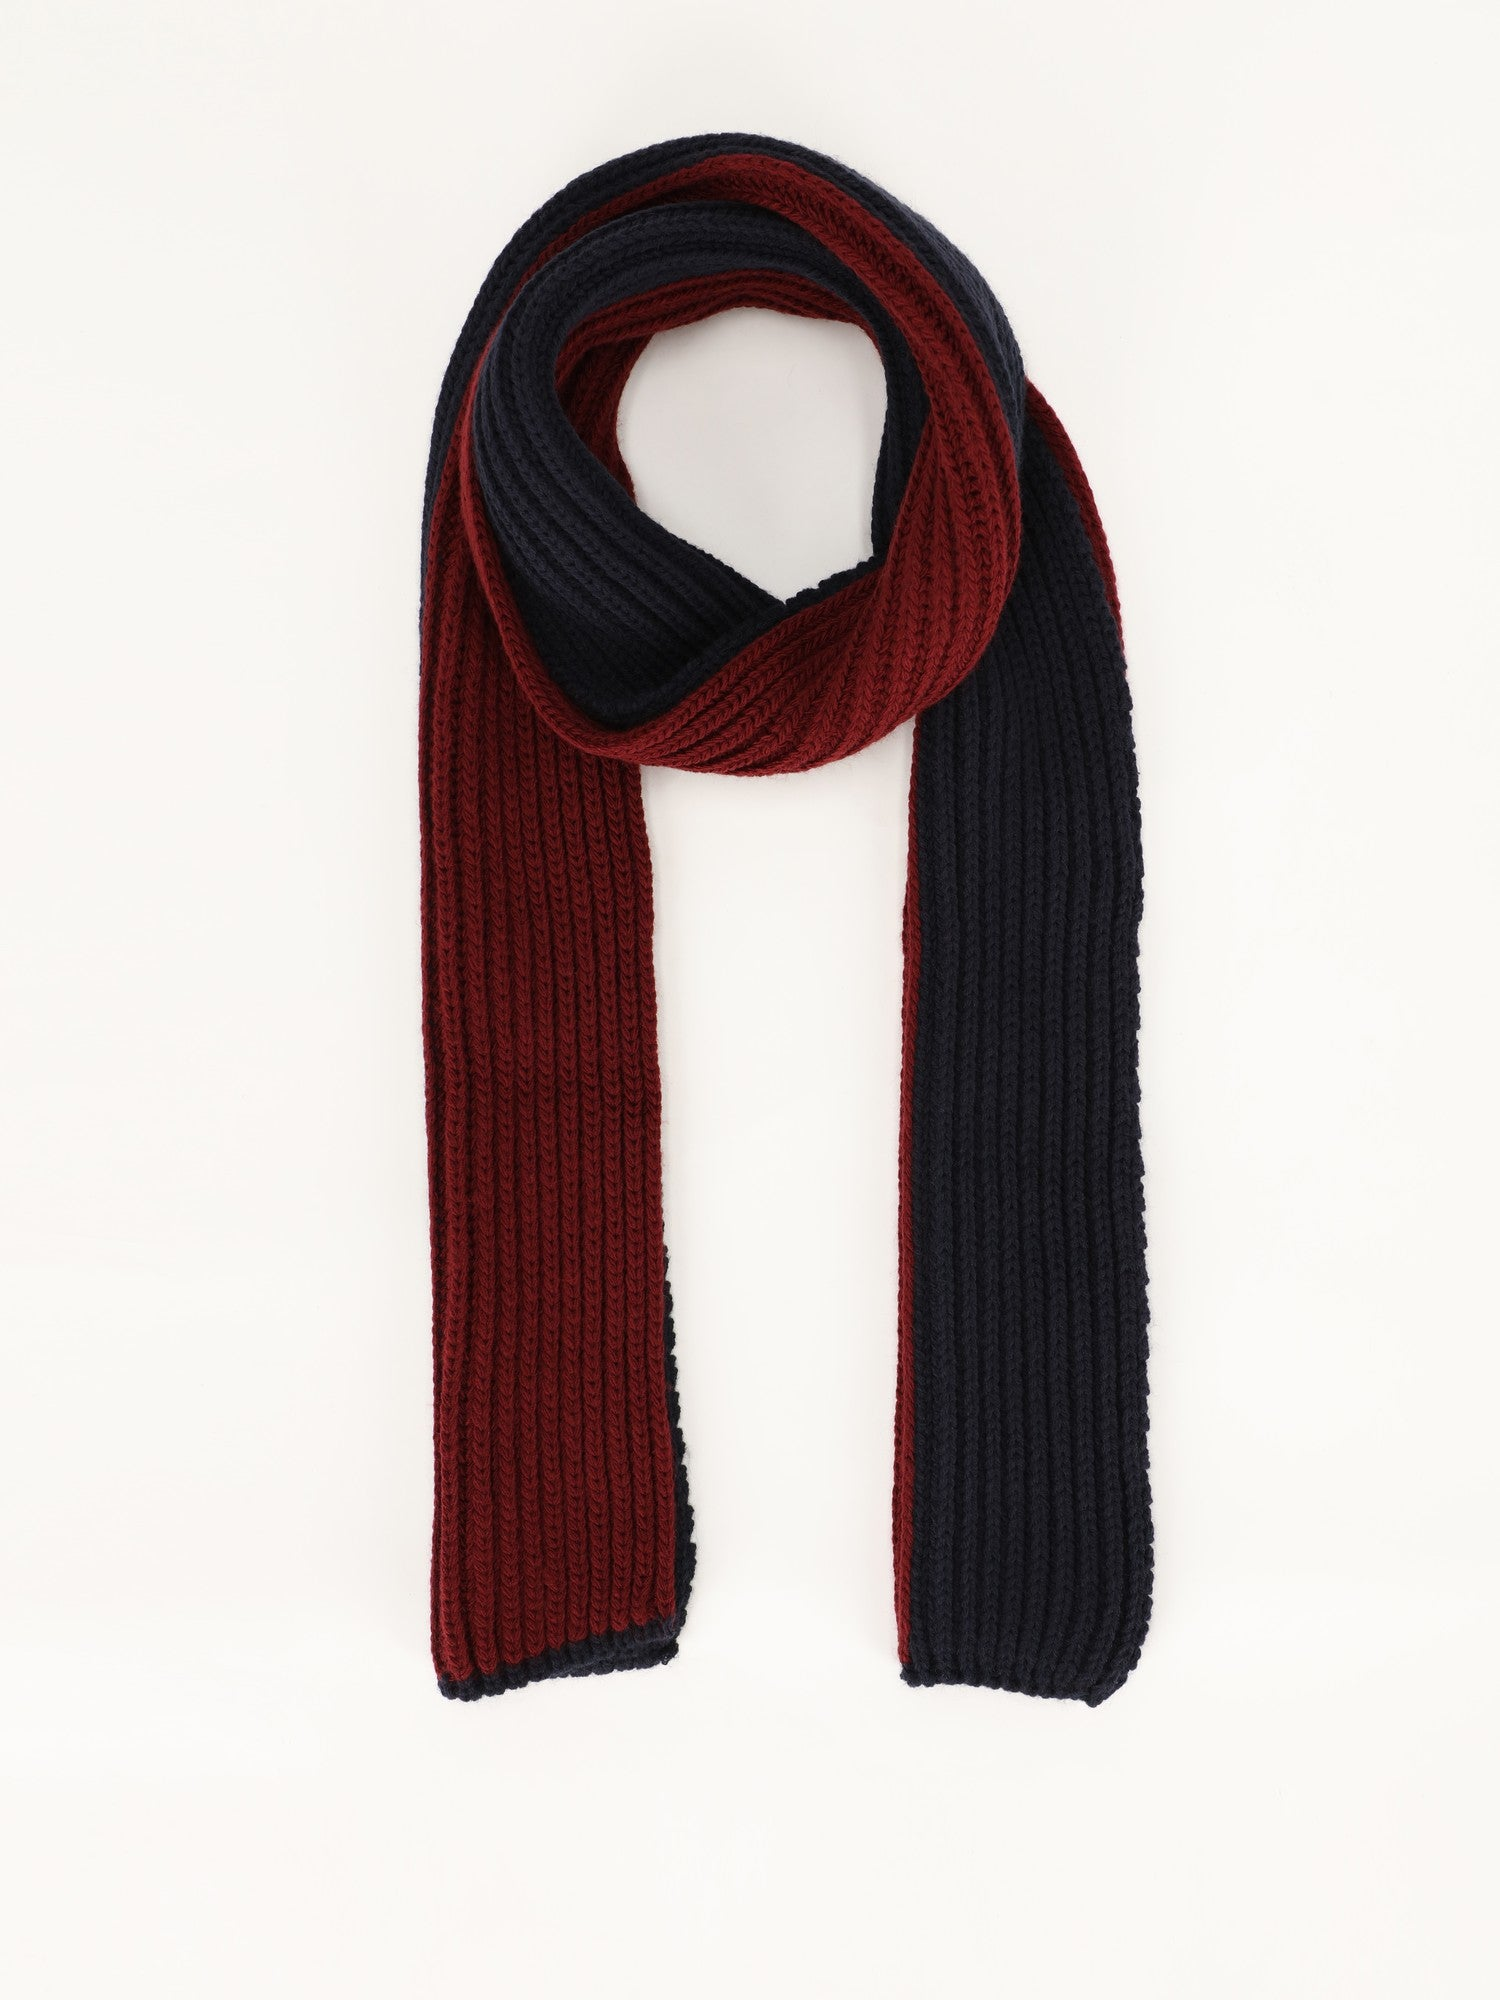 Bicolor Knitted Tricot Scarf